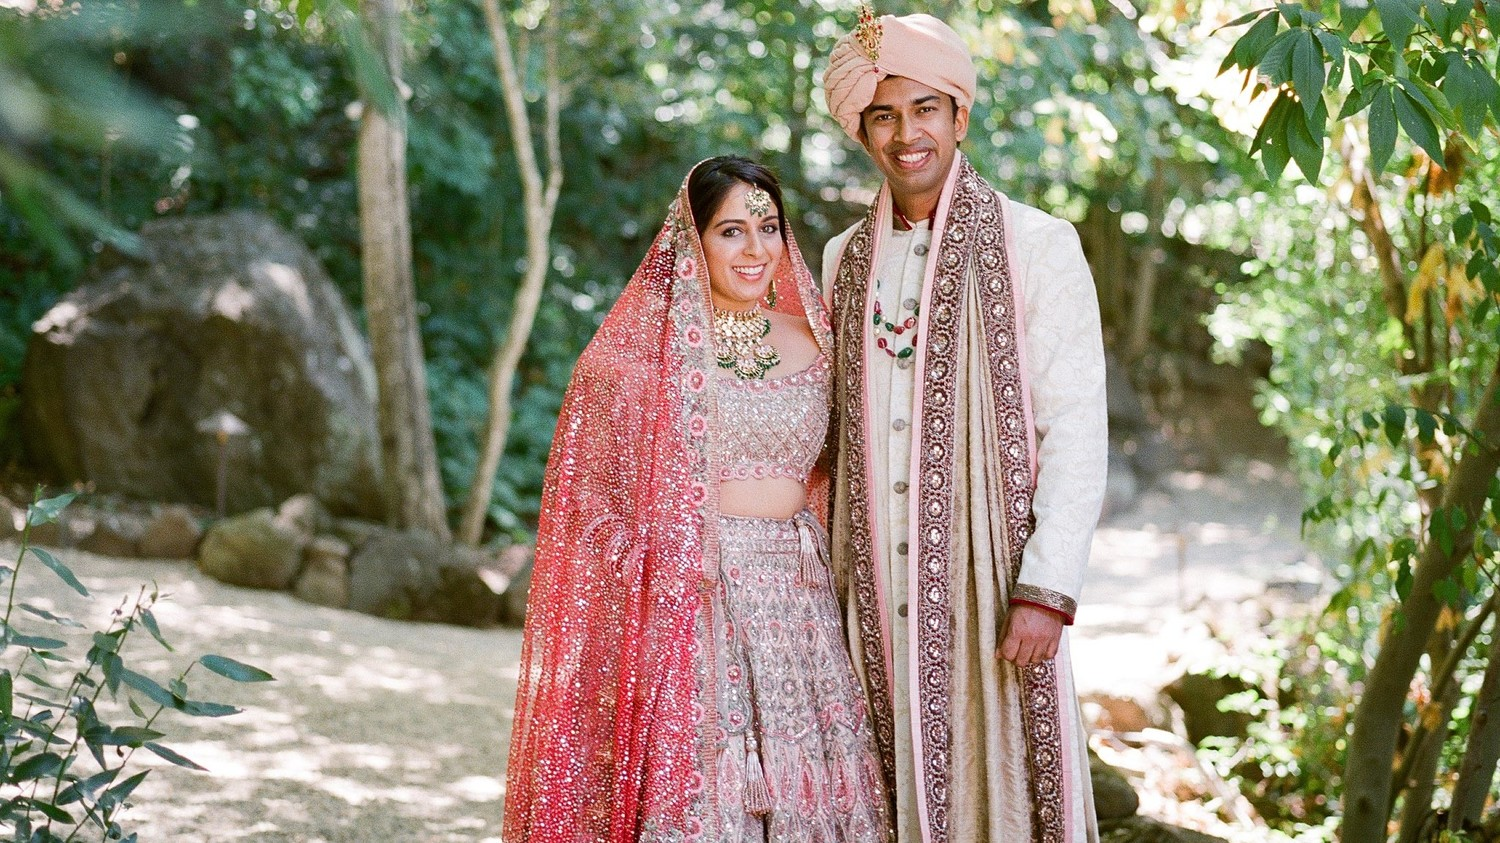 e74756dd98 Common Indian Wedding Traditions